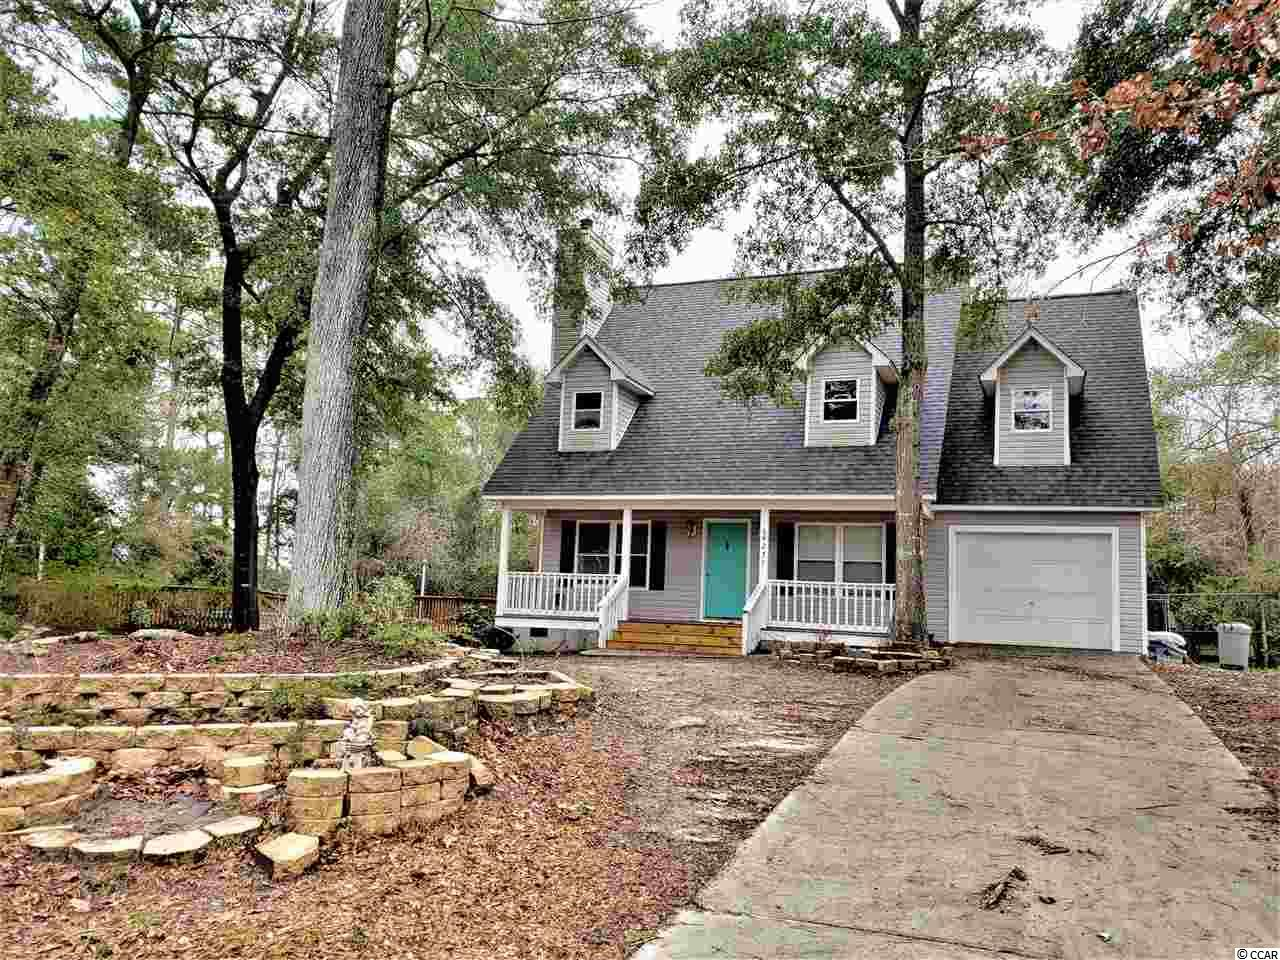 Great investment with tremendous potential! This large 4 bed 2 bath home is situated on a private tree lined lot in the established community of Graystone. A true handy man special, this home has had recent renovations and offers endless possibilities to make it your own! NEW HVAC, NEW ROOF, & NEW CARPET!! Graystone is located just south of the NC border, in a highly sought after area. Great price and great opportunity to live in a tree-filled neighborhood; tons of sweat equity, perfect for the creative!